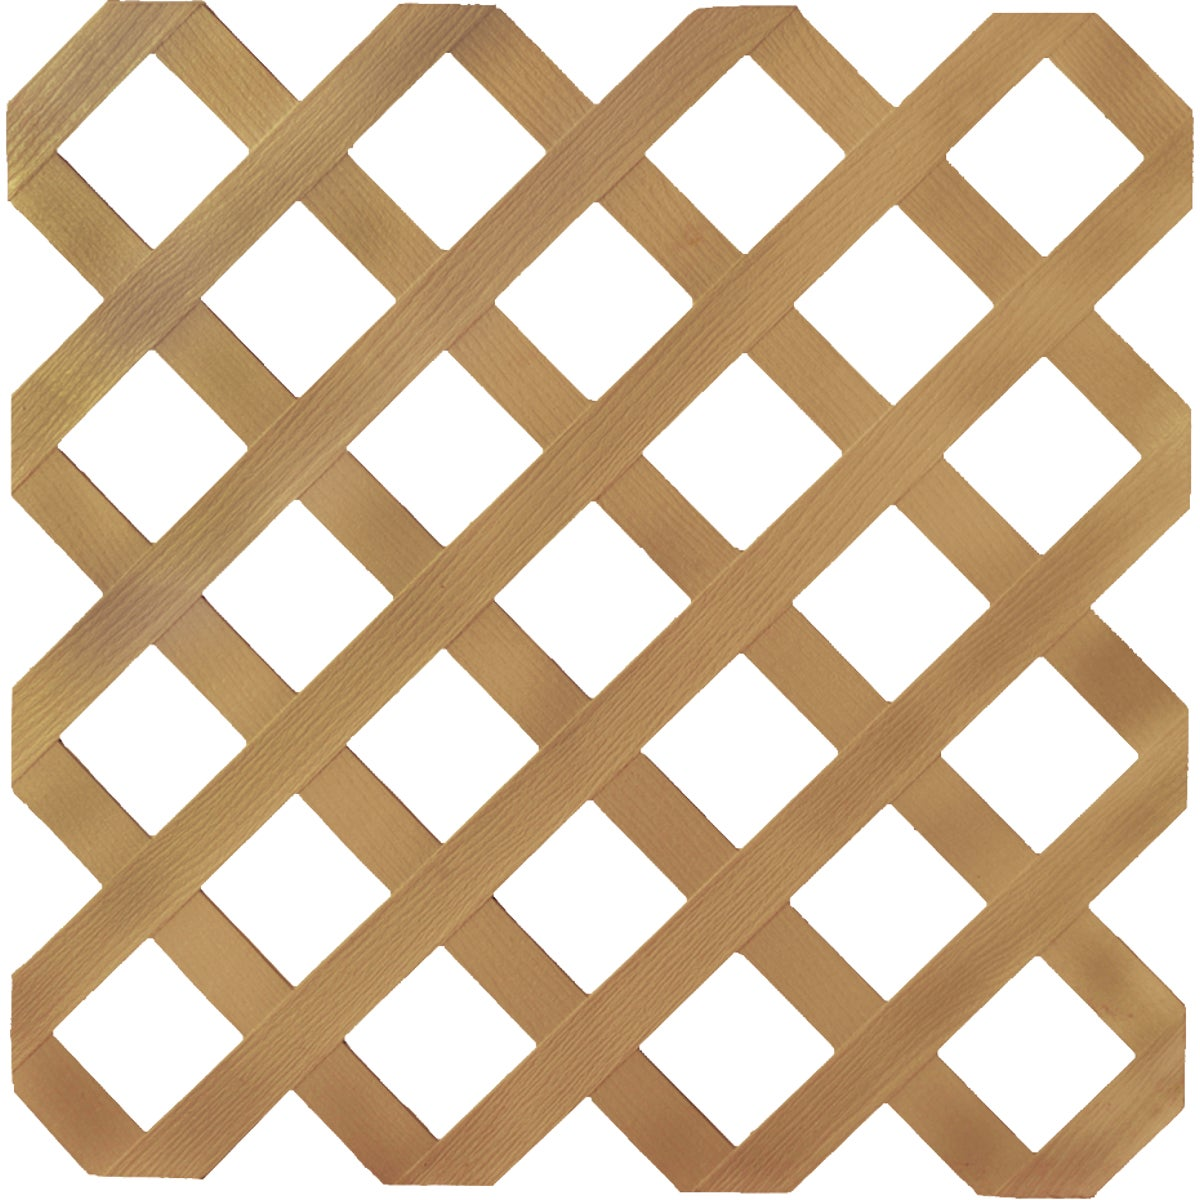 4X8 CEDAR LATTICE - 79899 by Ufpi   Plstc Lattice